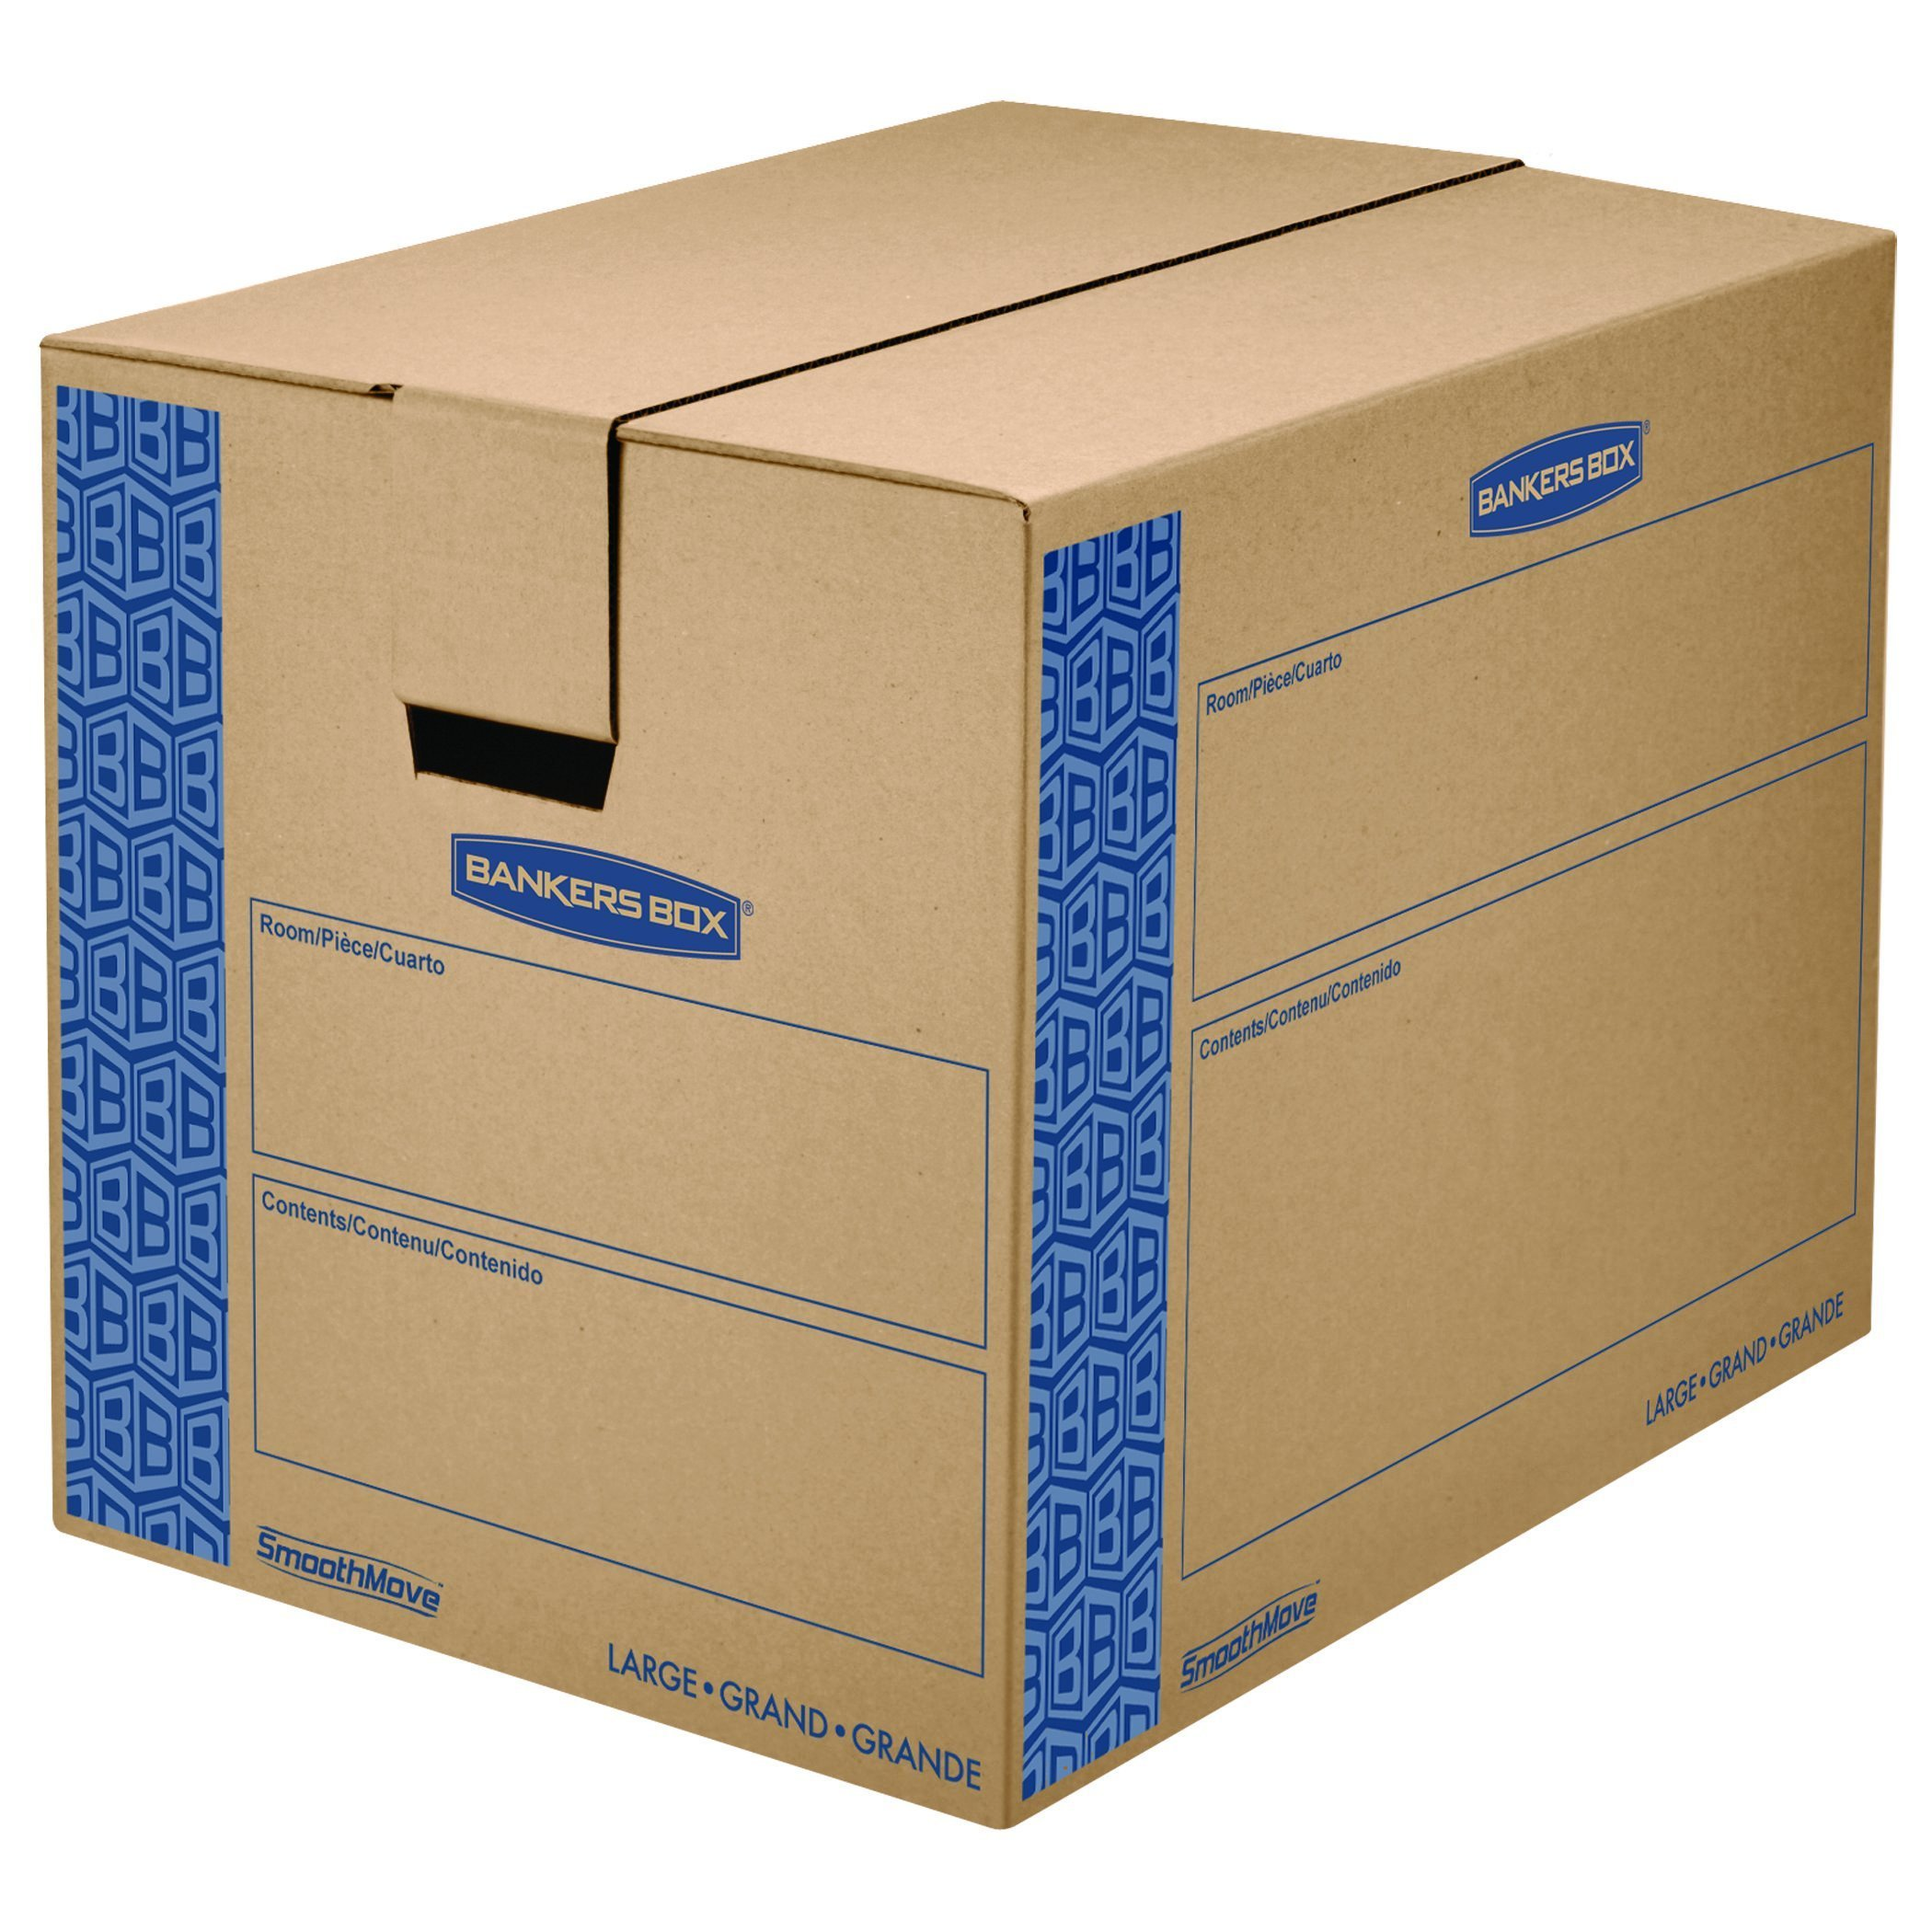 Bankers Box SmoothMove Prime Moving Boxes - 0062901 (Renewed)